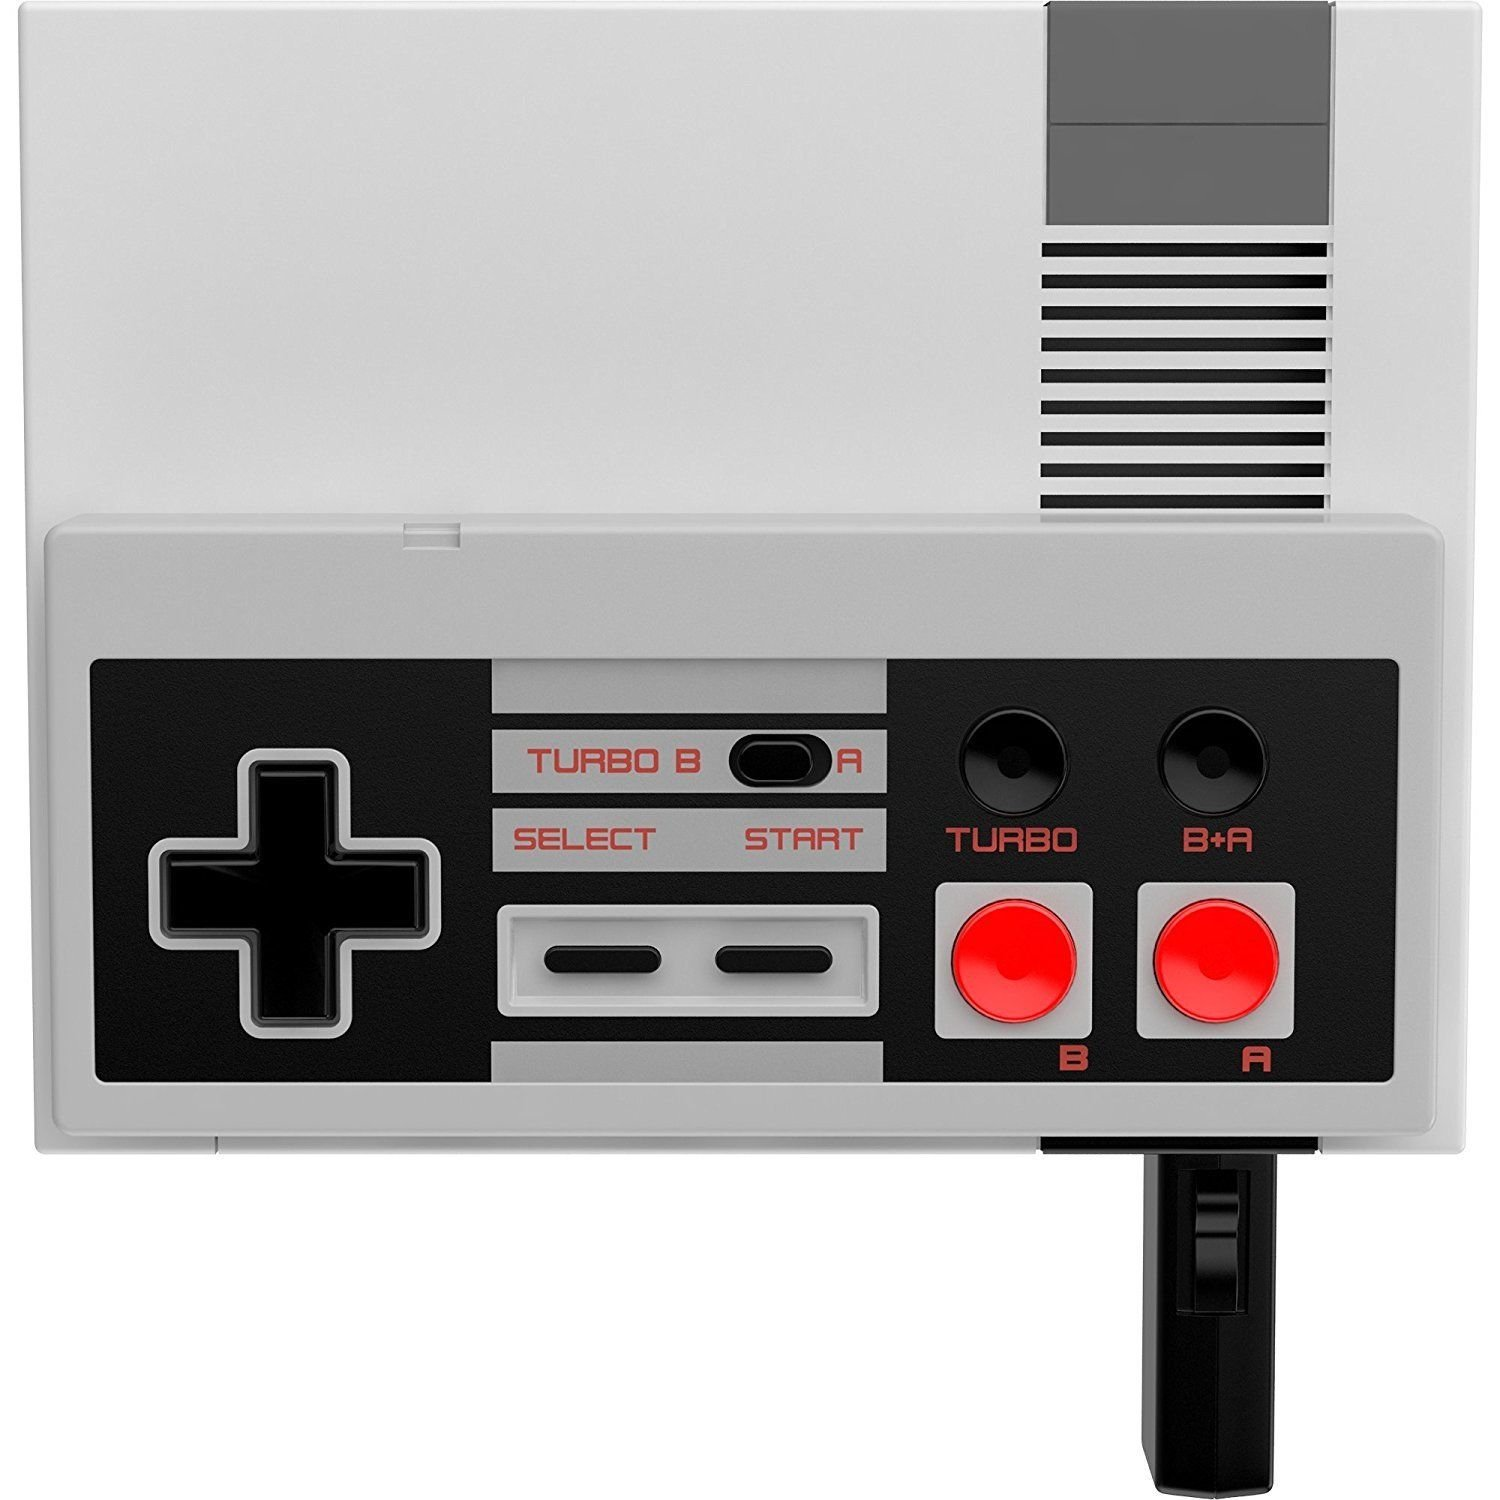 Amazon.com: Ortz 10 Feet NES Classic Edition Mini Controller [TURBO EDITION] Rapid Buttons for Nintendo Gaming System: Video Games